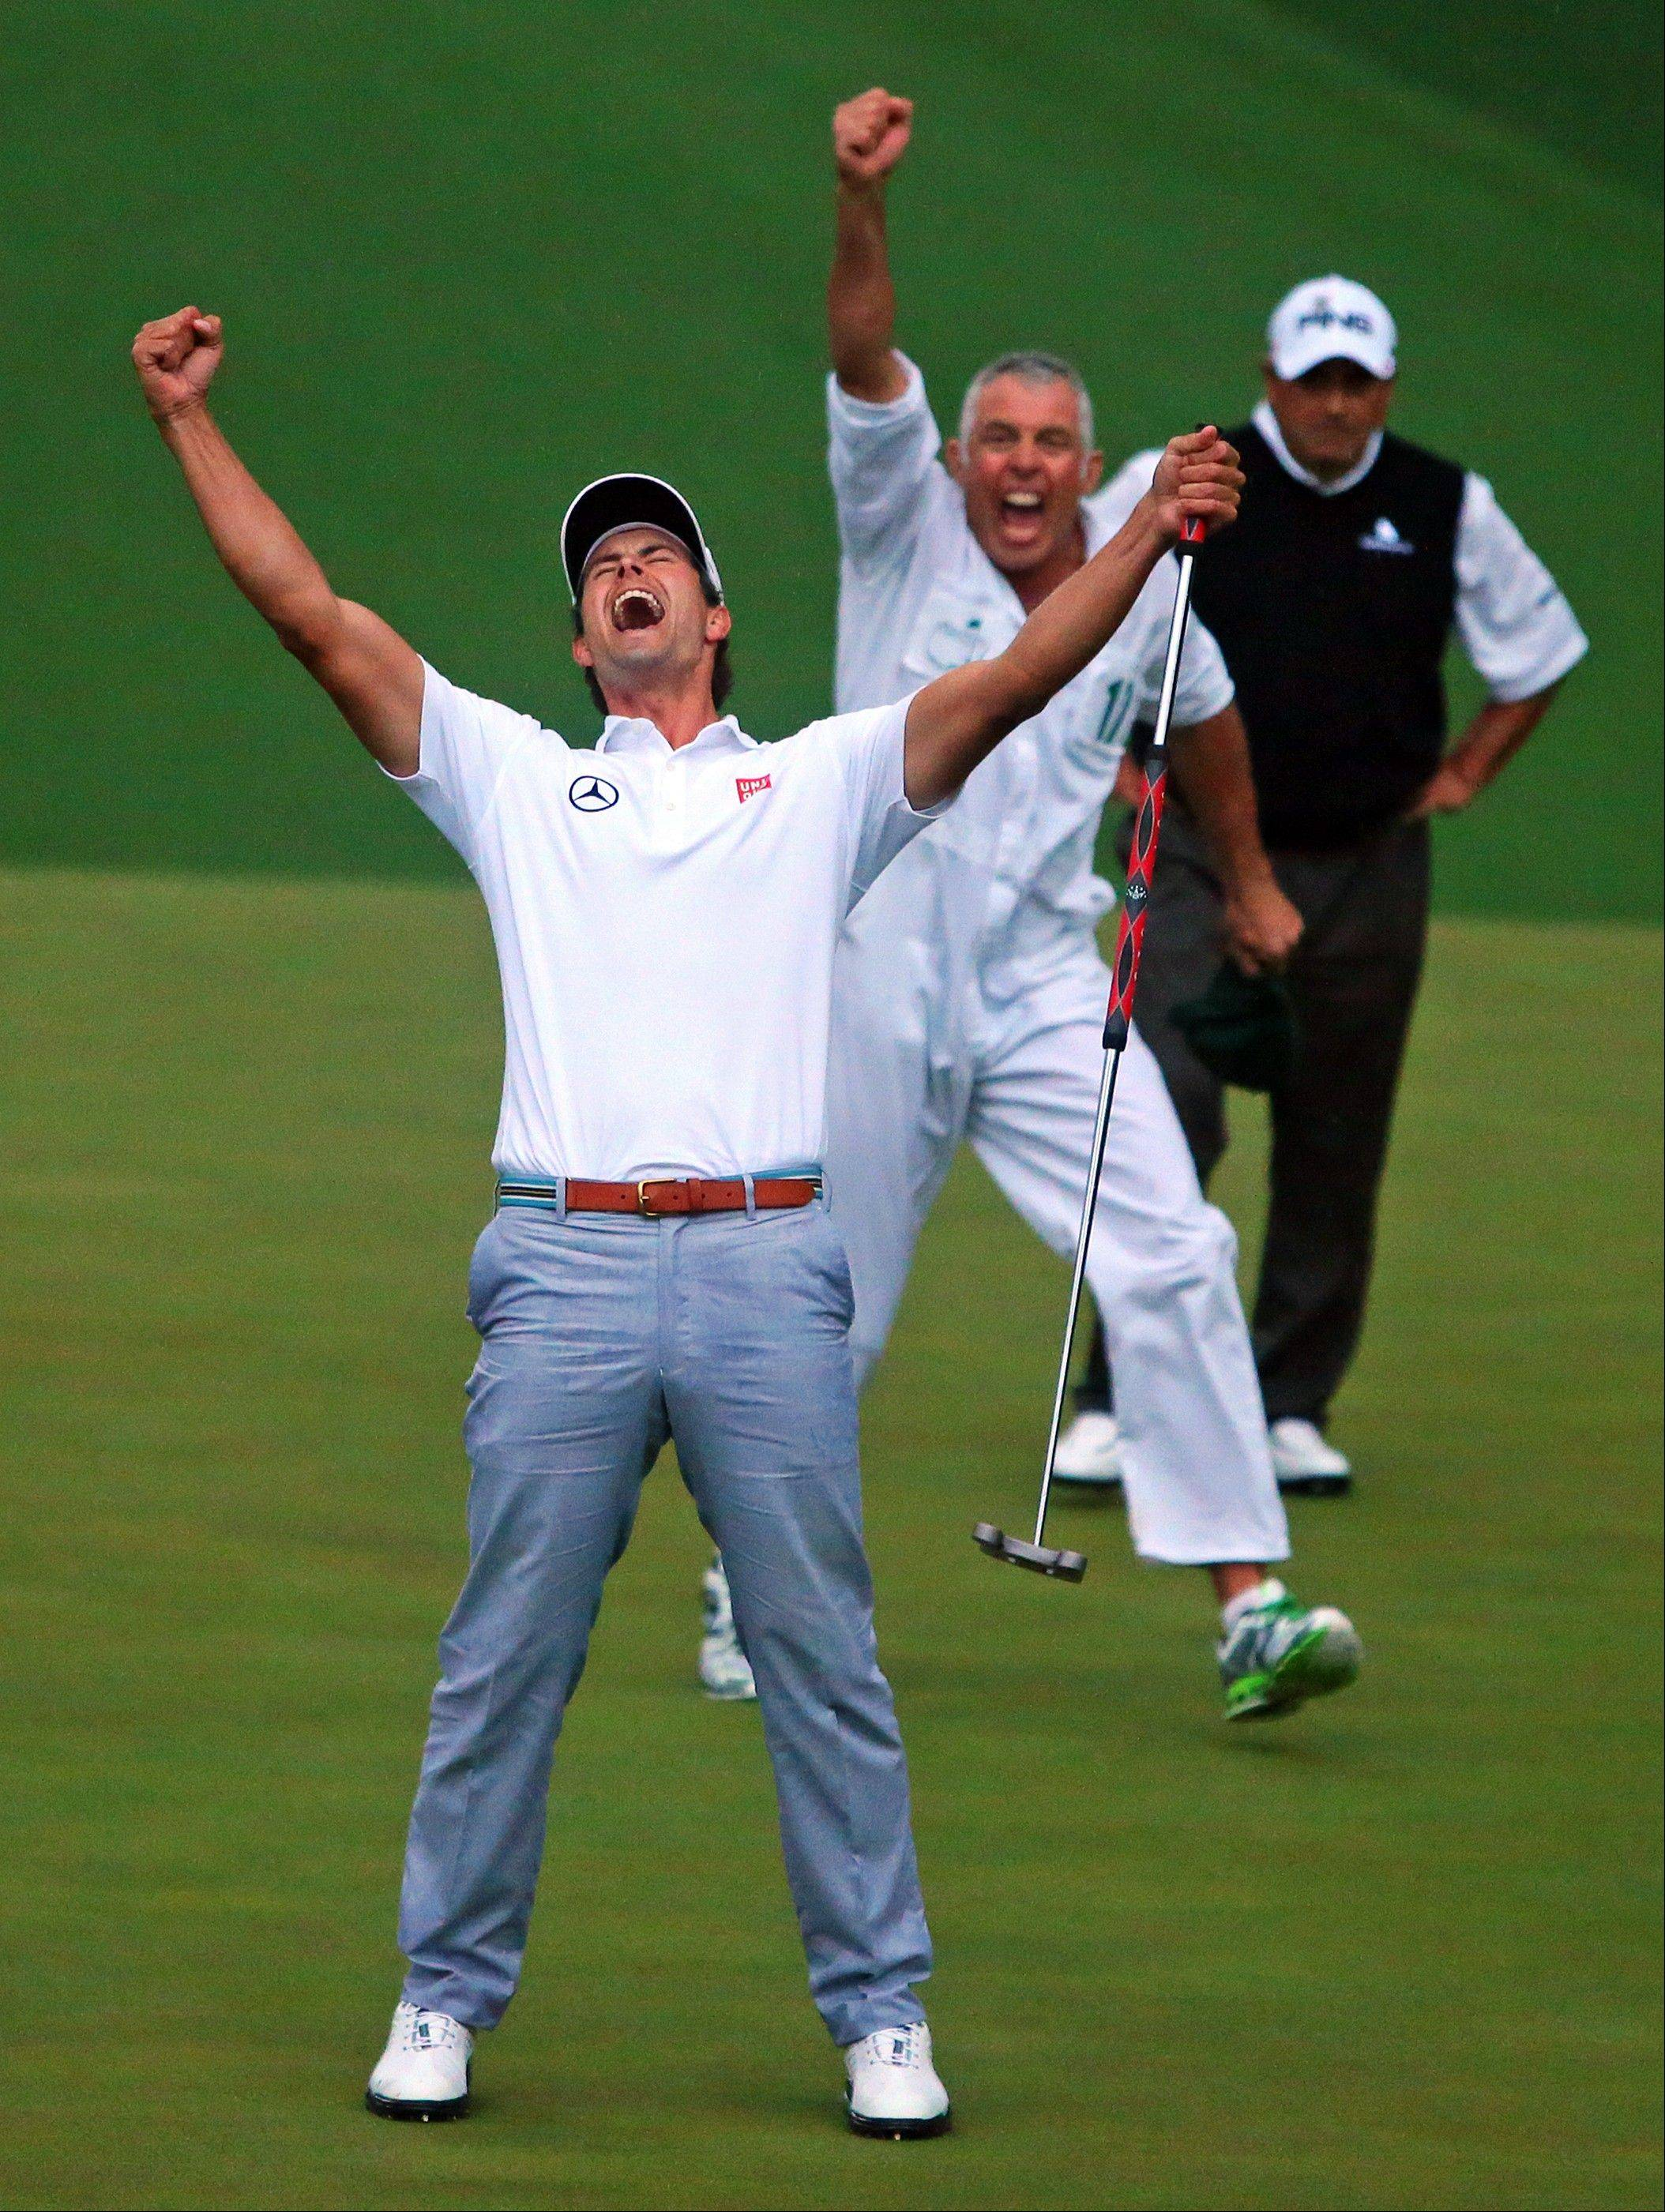 Adam Scott, of Australia, celebrates after making a birdie putt on the second playoff hole to win the Masters golf tournament Sunday, April 14, 2013, in Augusta, Ga.